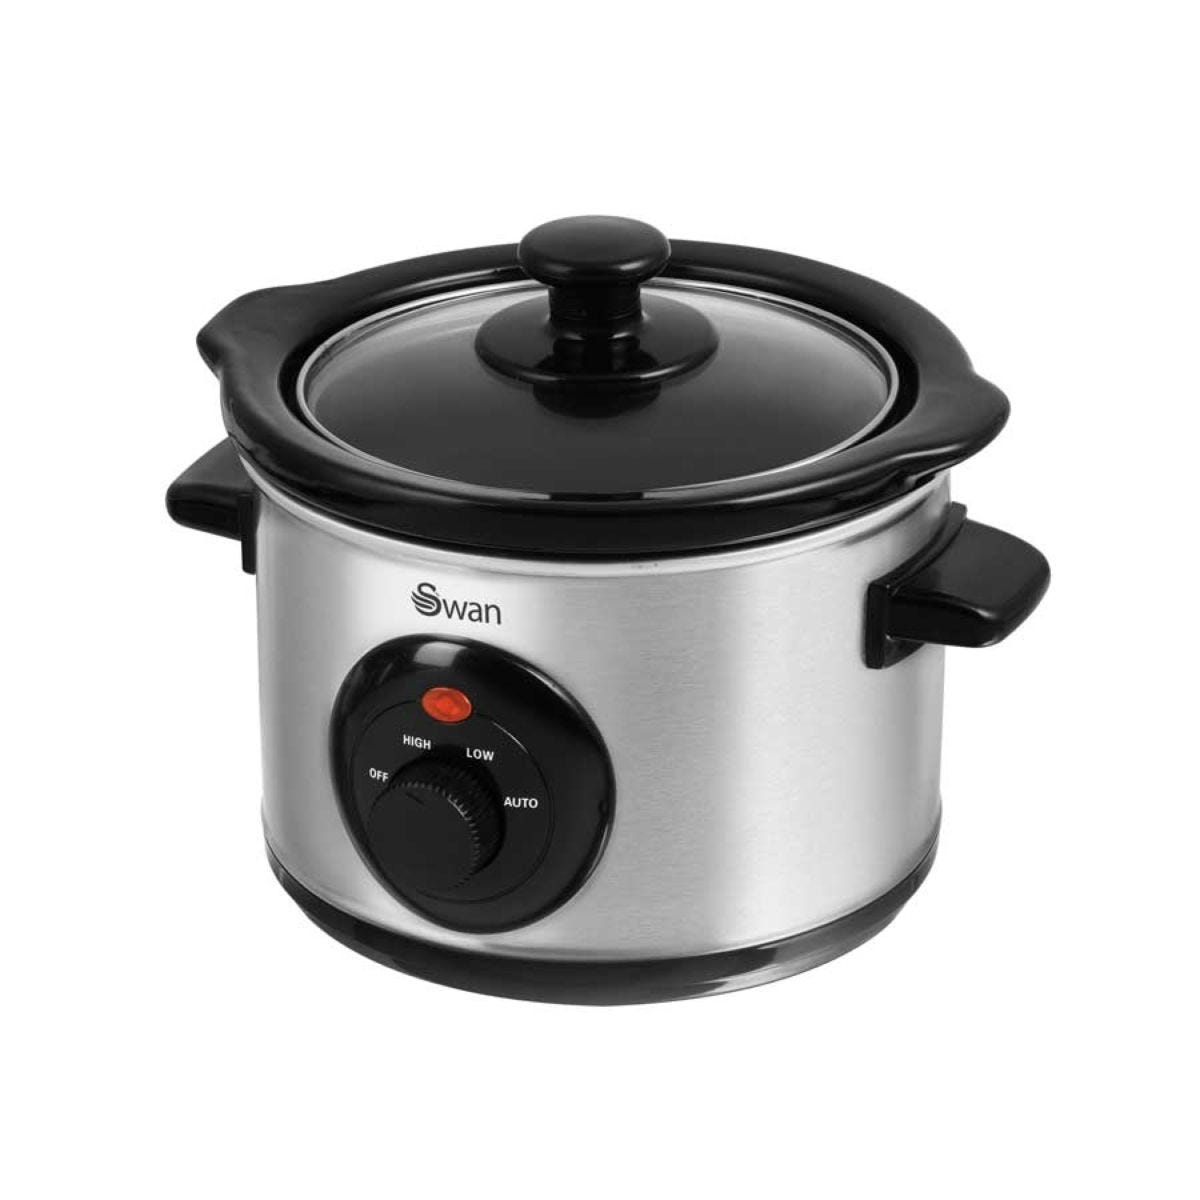 Swan Stainless Steel 1.5L Slow Cooker - Silver